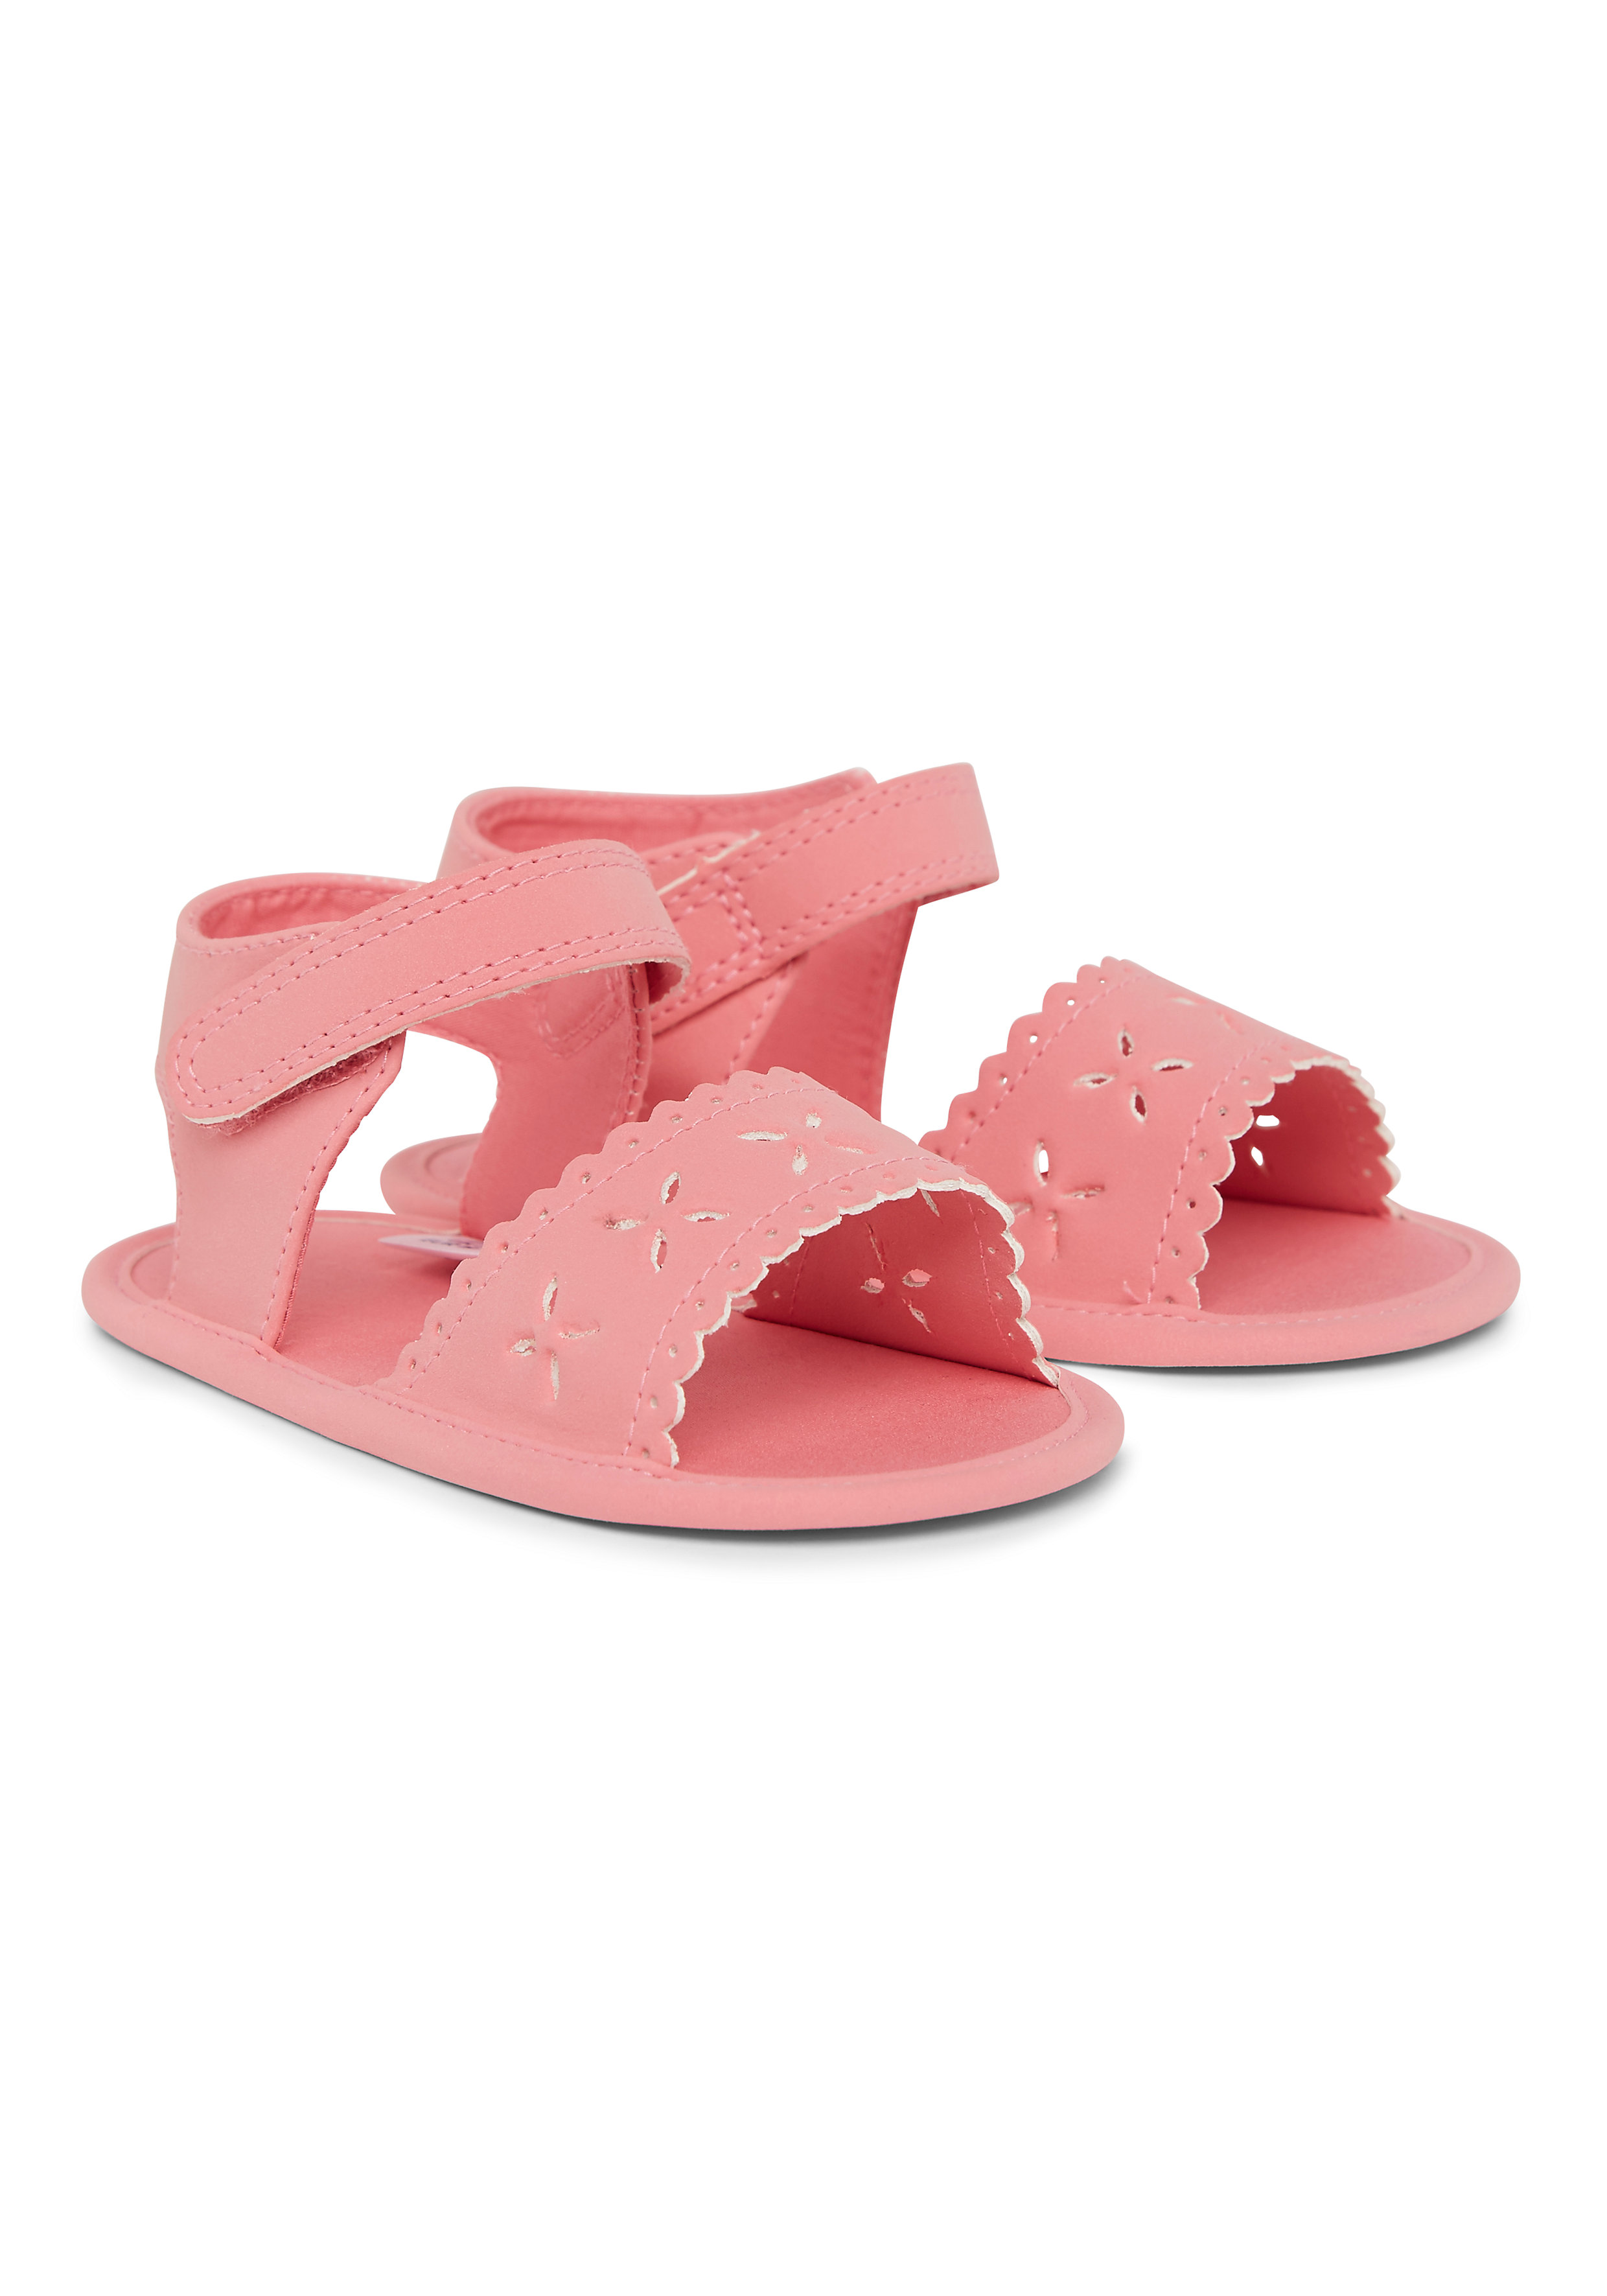 Mothercare   Girls Cut Out Flower Sandals - Pink